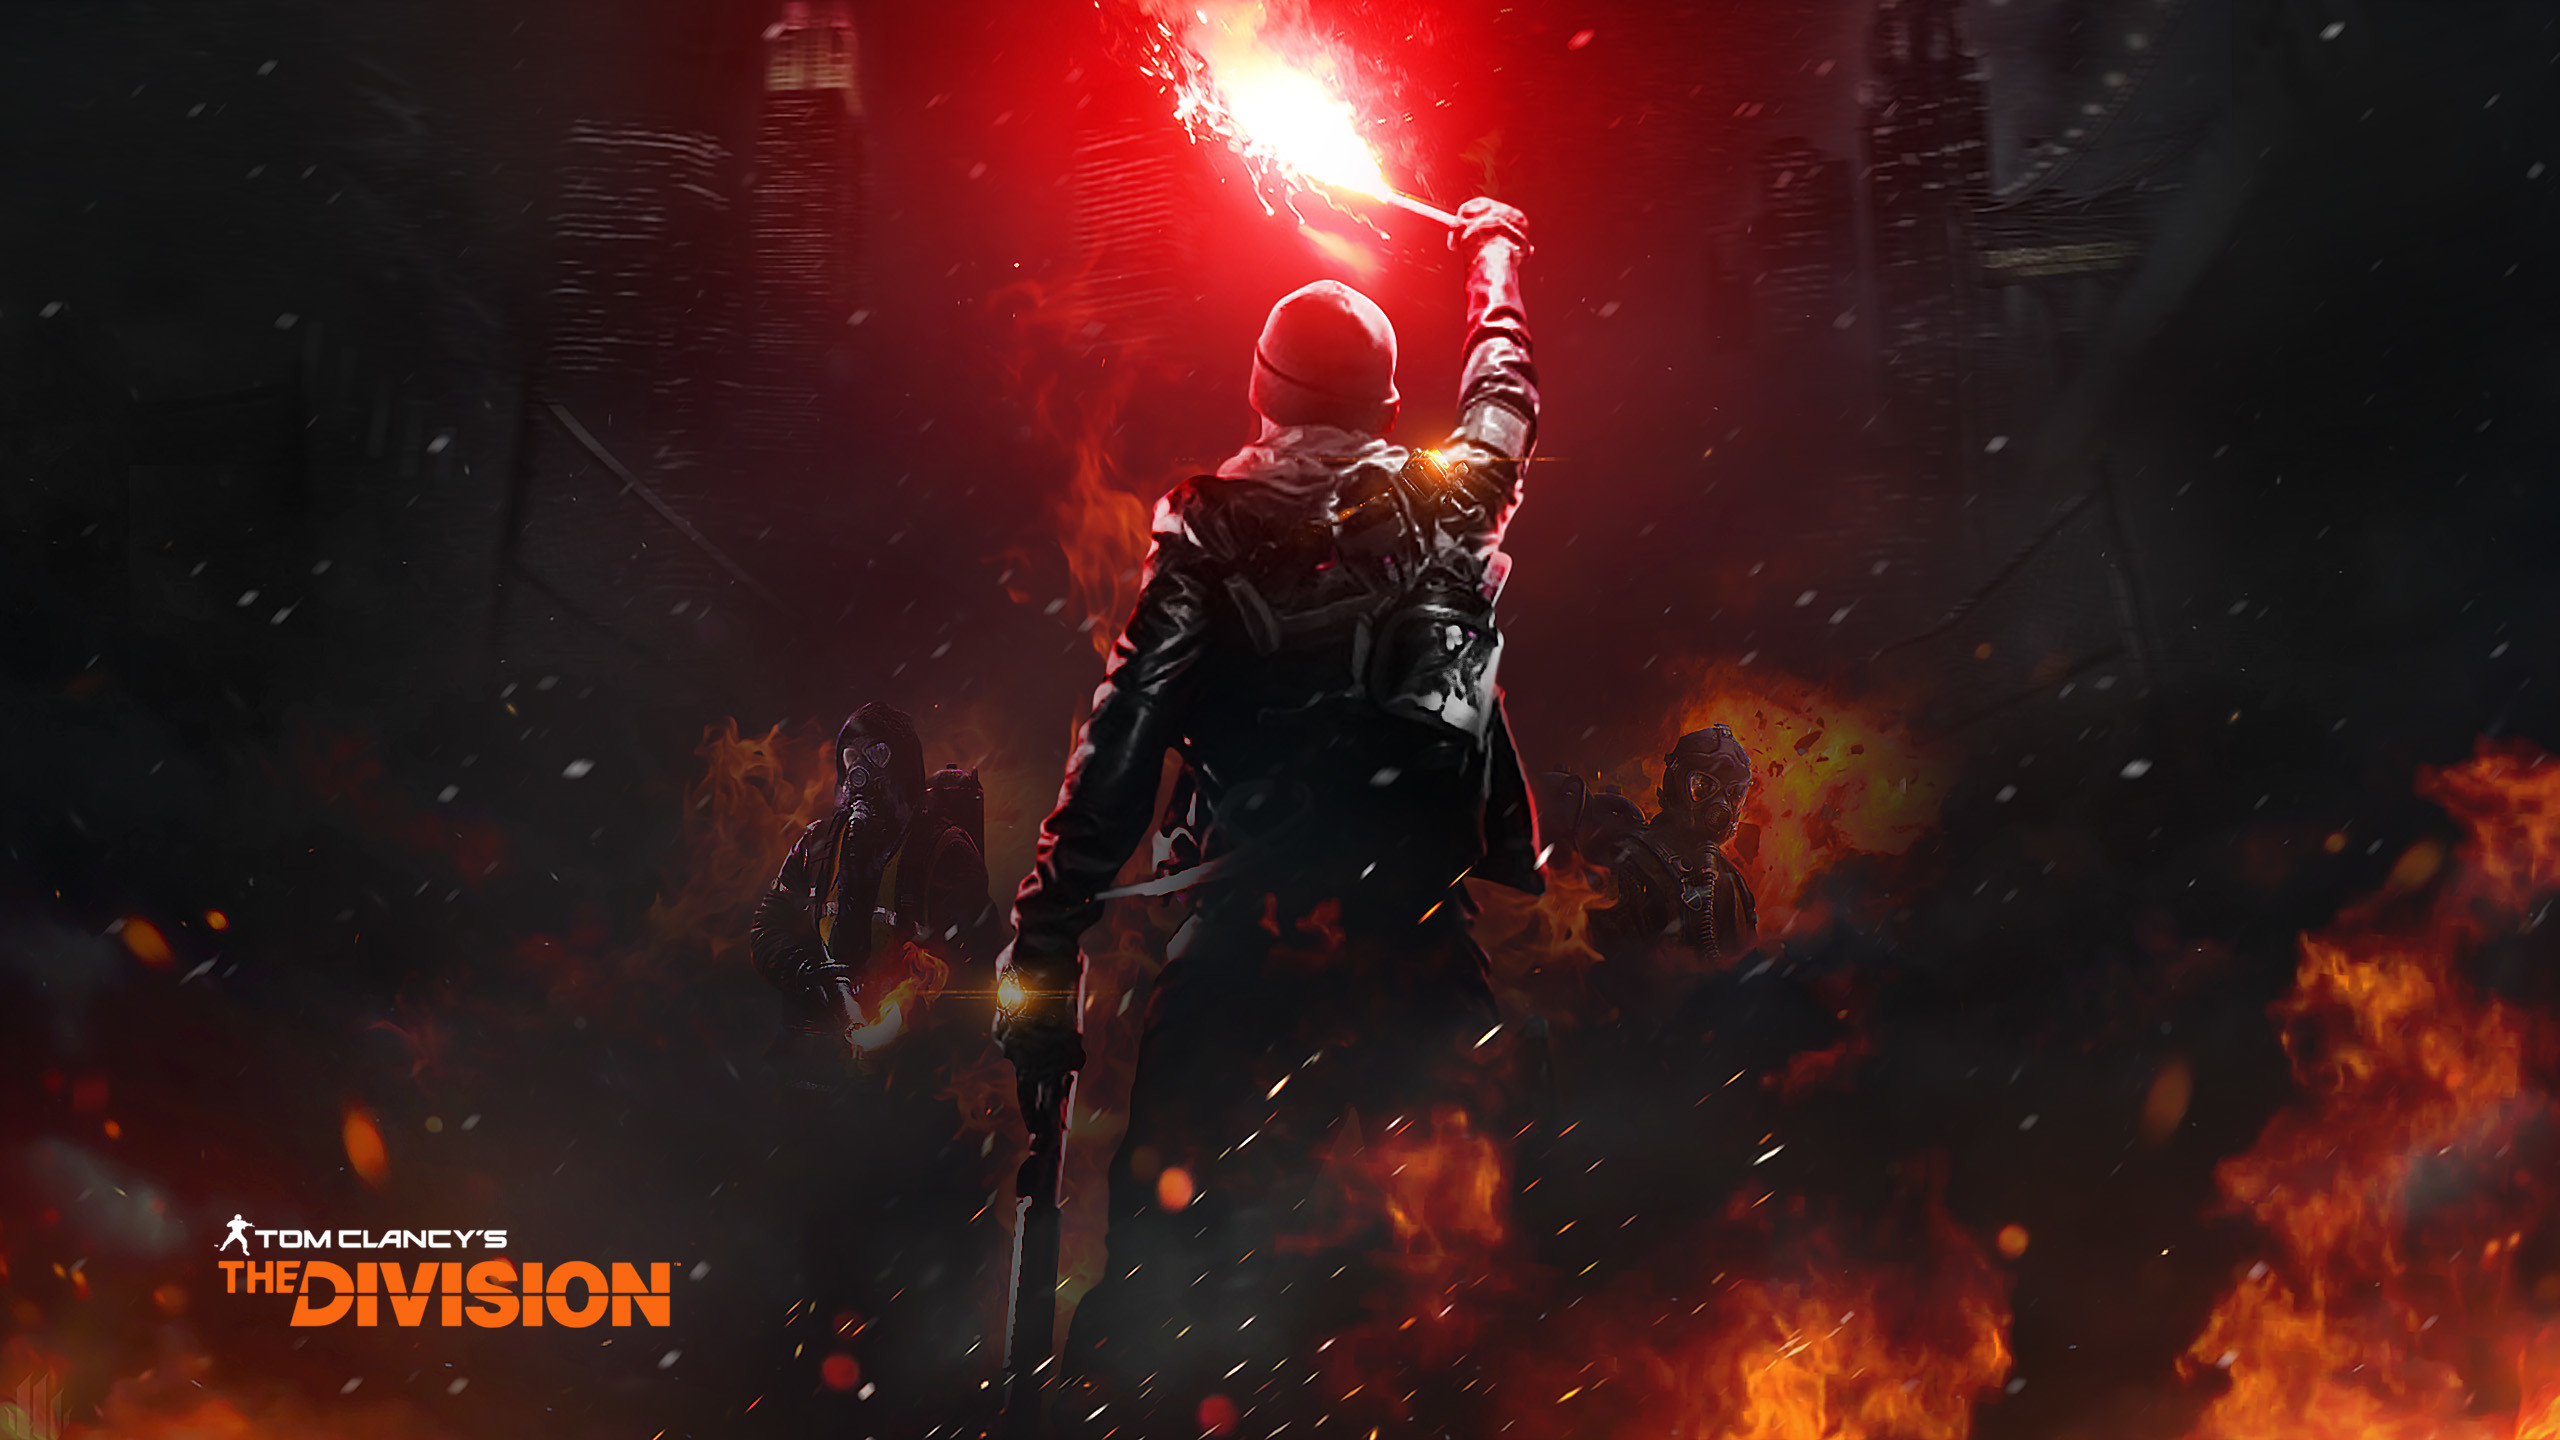 2560x1440 Awesome The Division Wallpaper Best